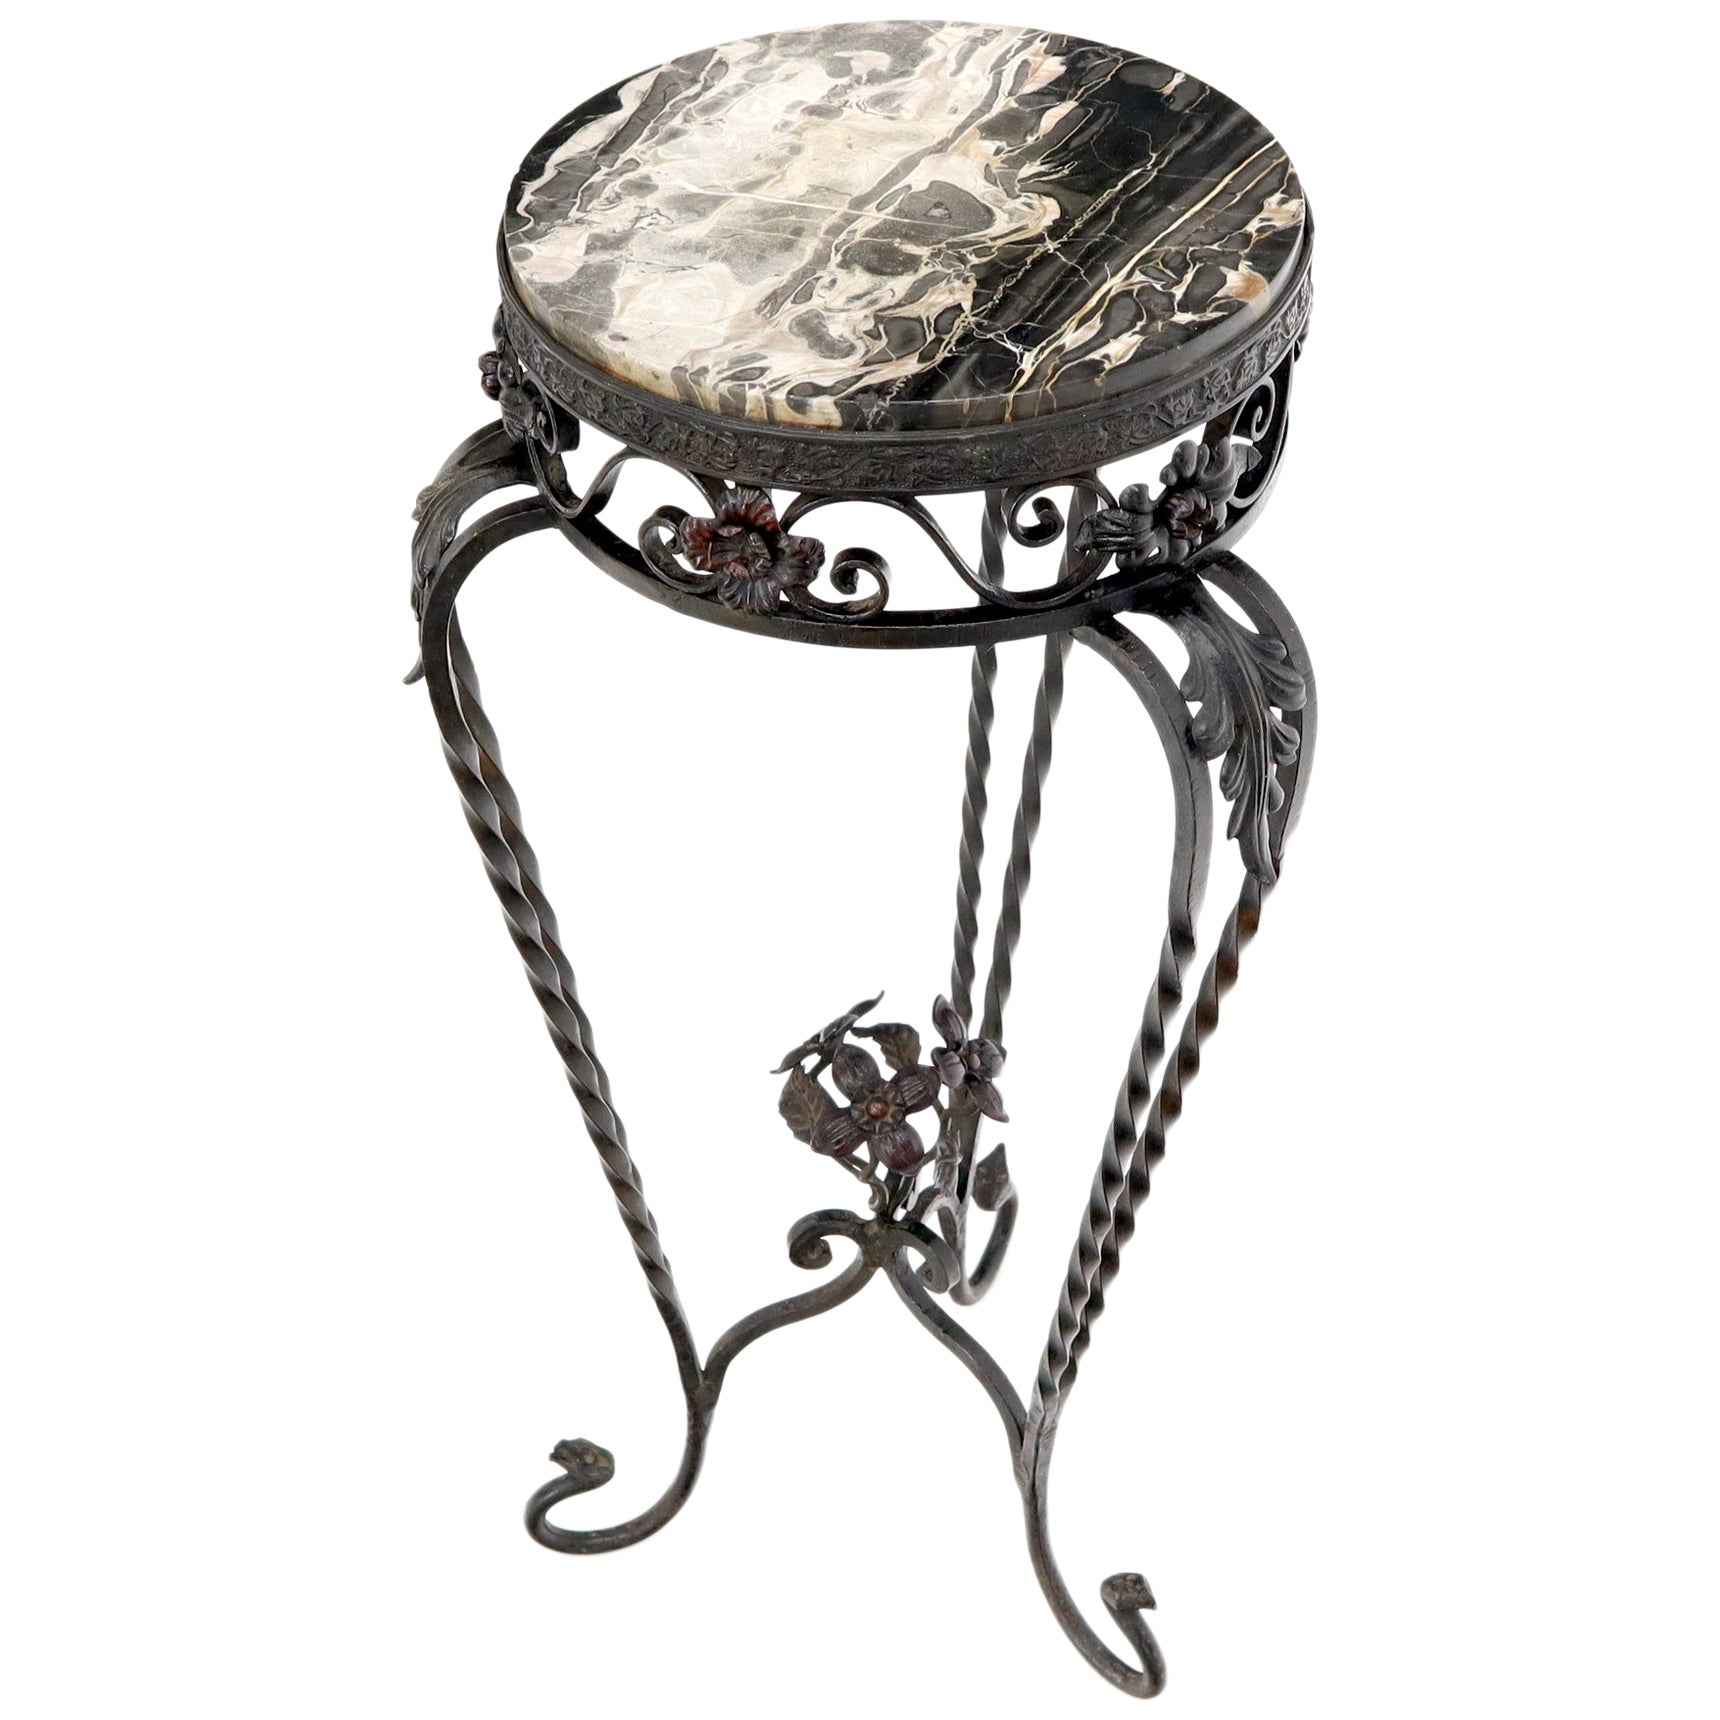 Round Black & White Marble Top Wrought Iron Pedestal Stand Table